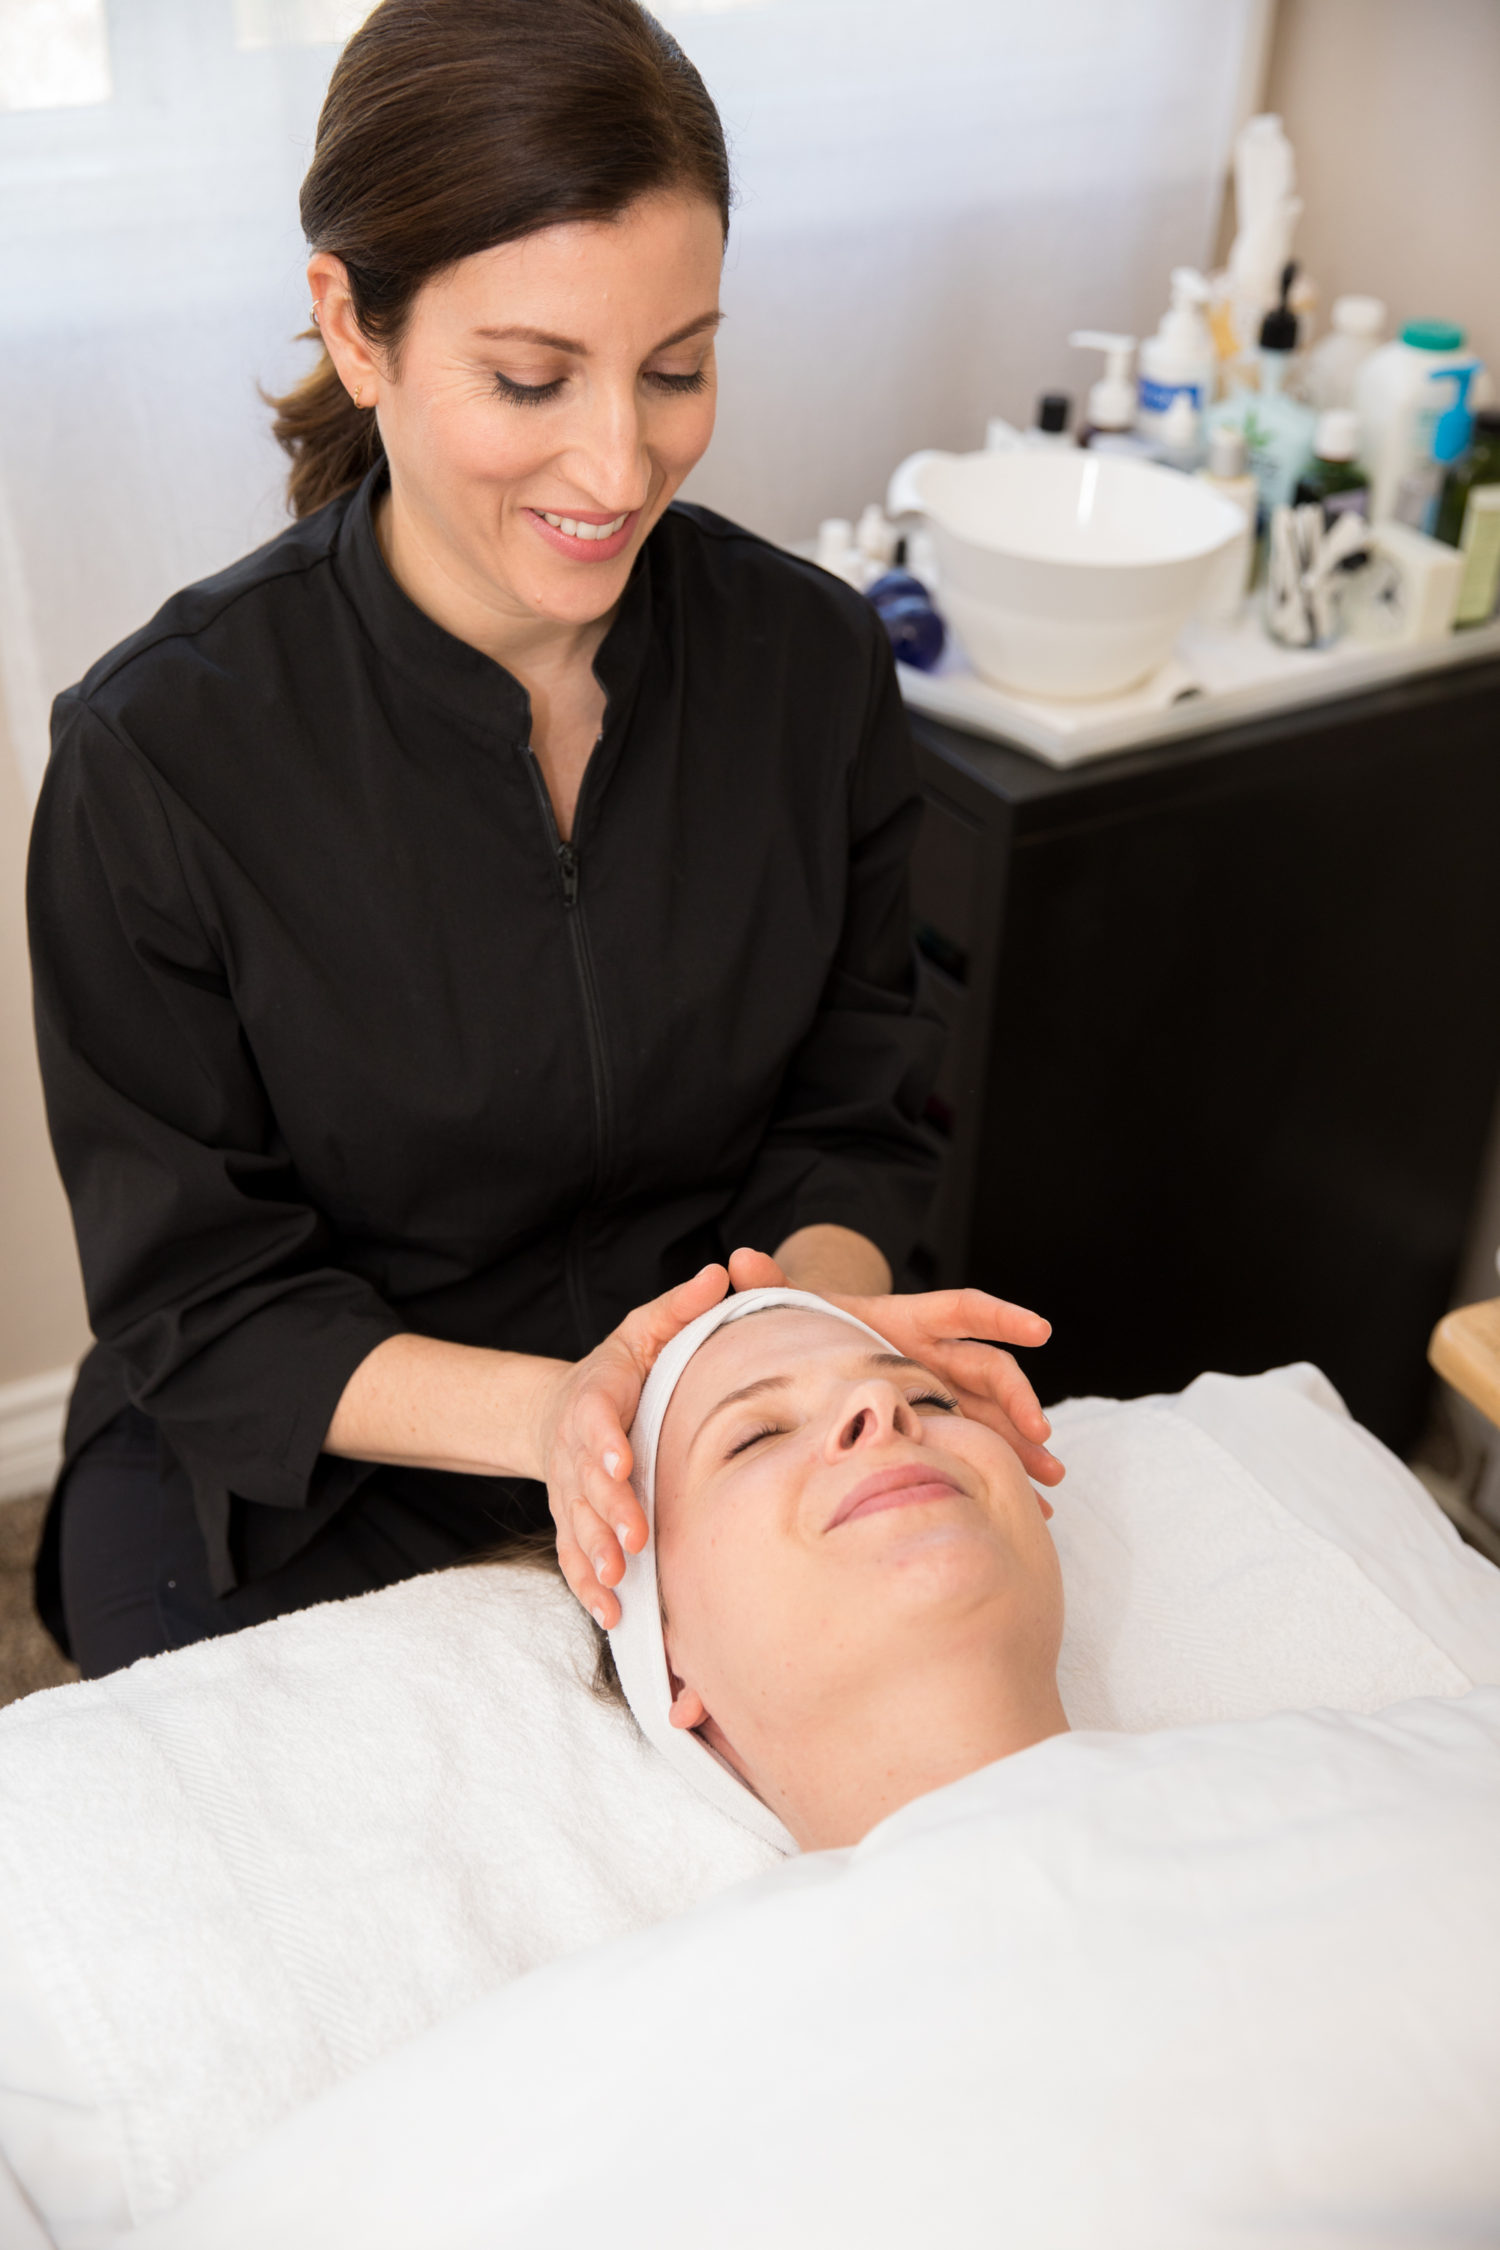 Why Is It Important to Get a Facial?